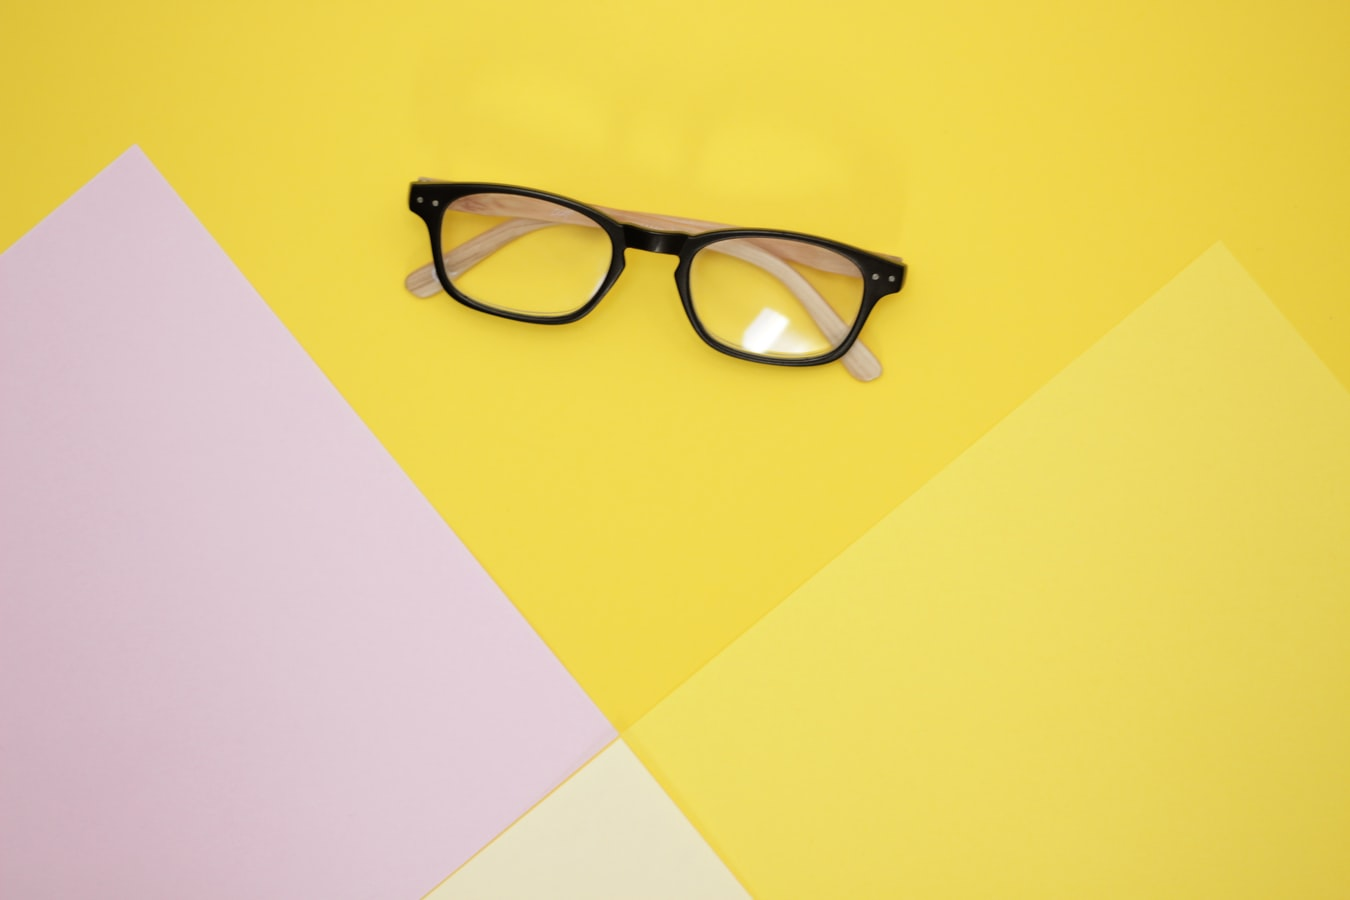 A pair of glasses on a yellow background.